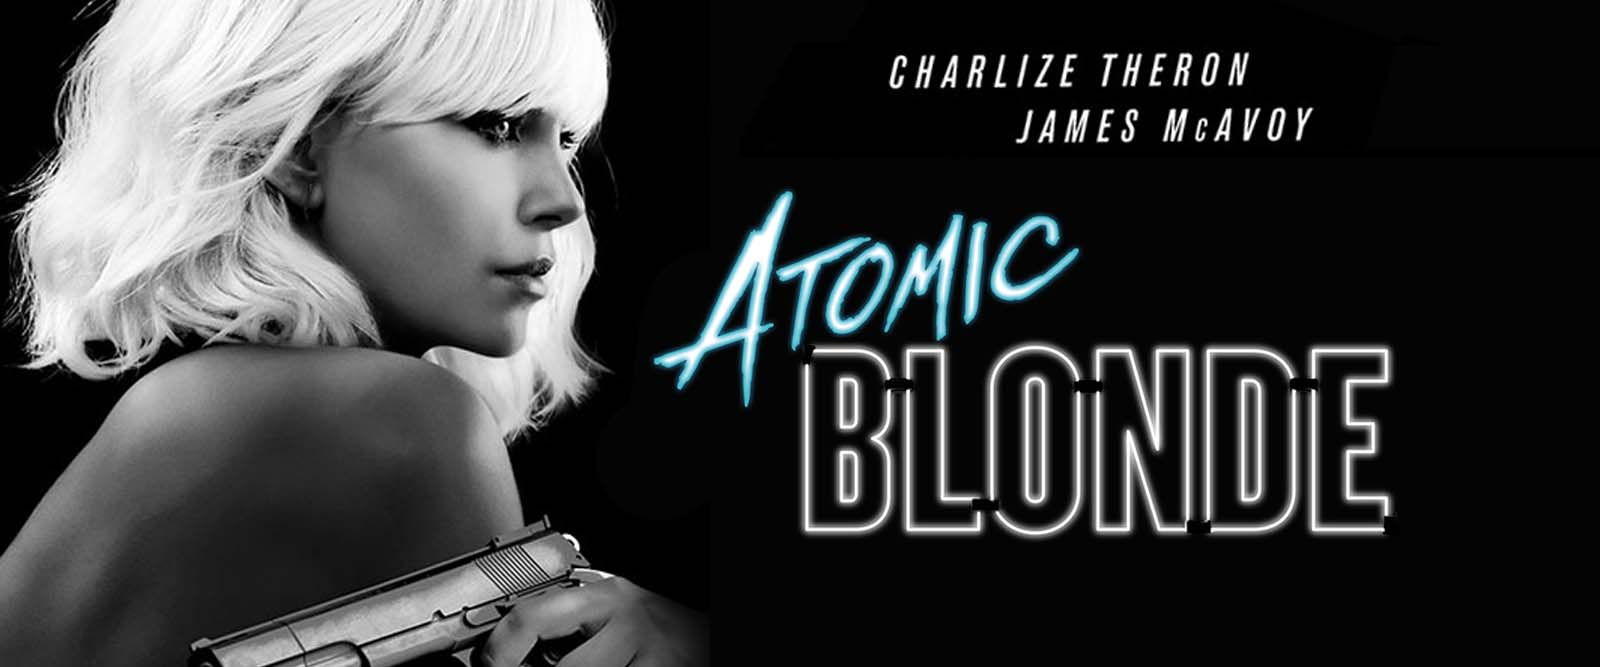 Atomic Blonde movies of 2017